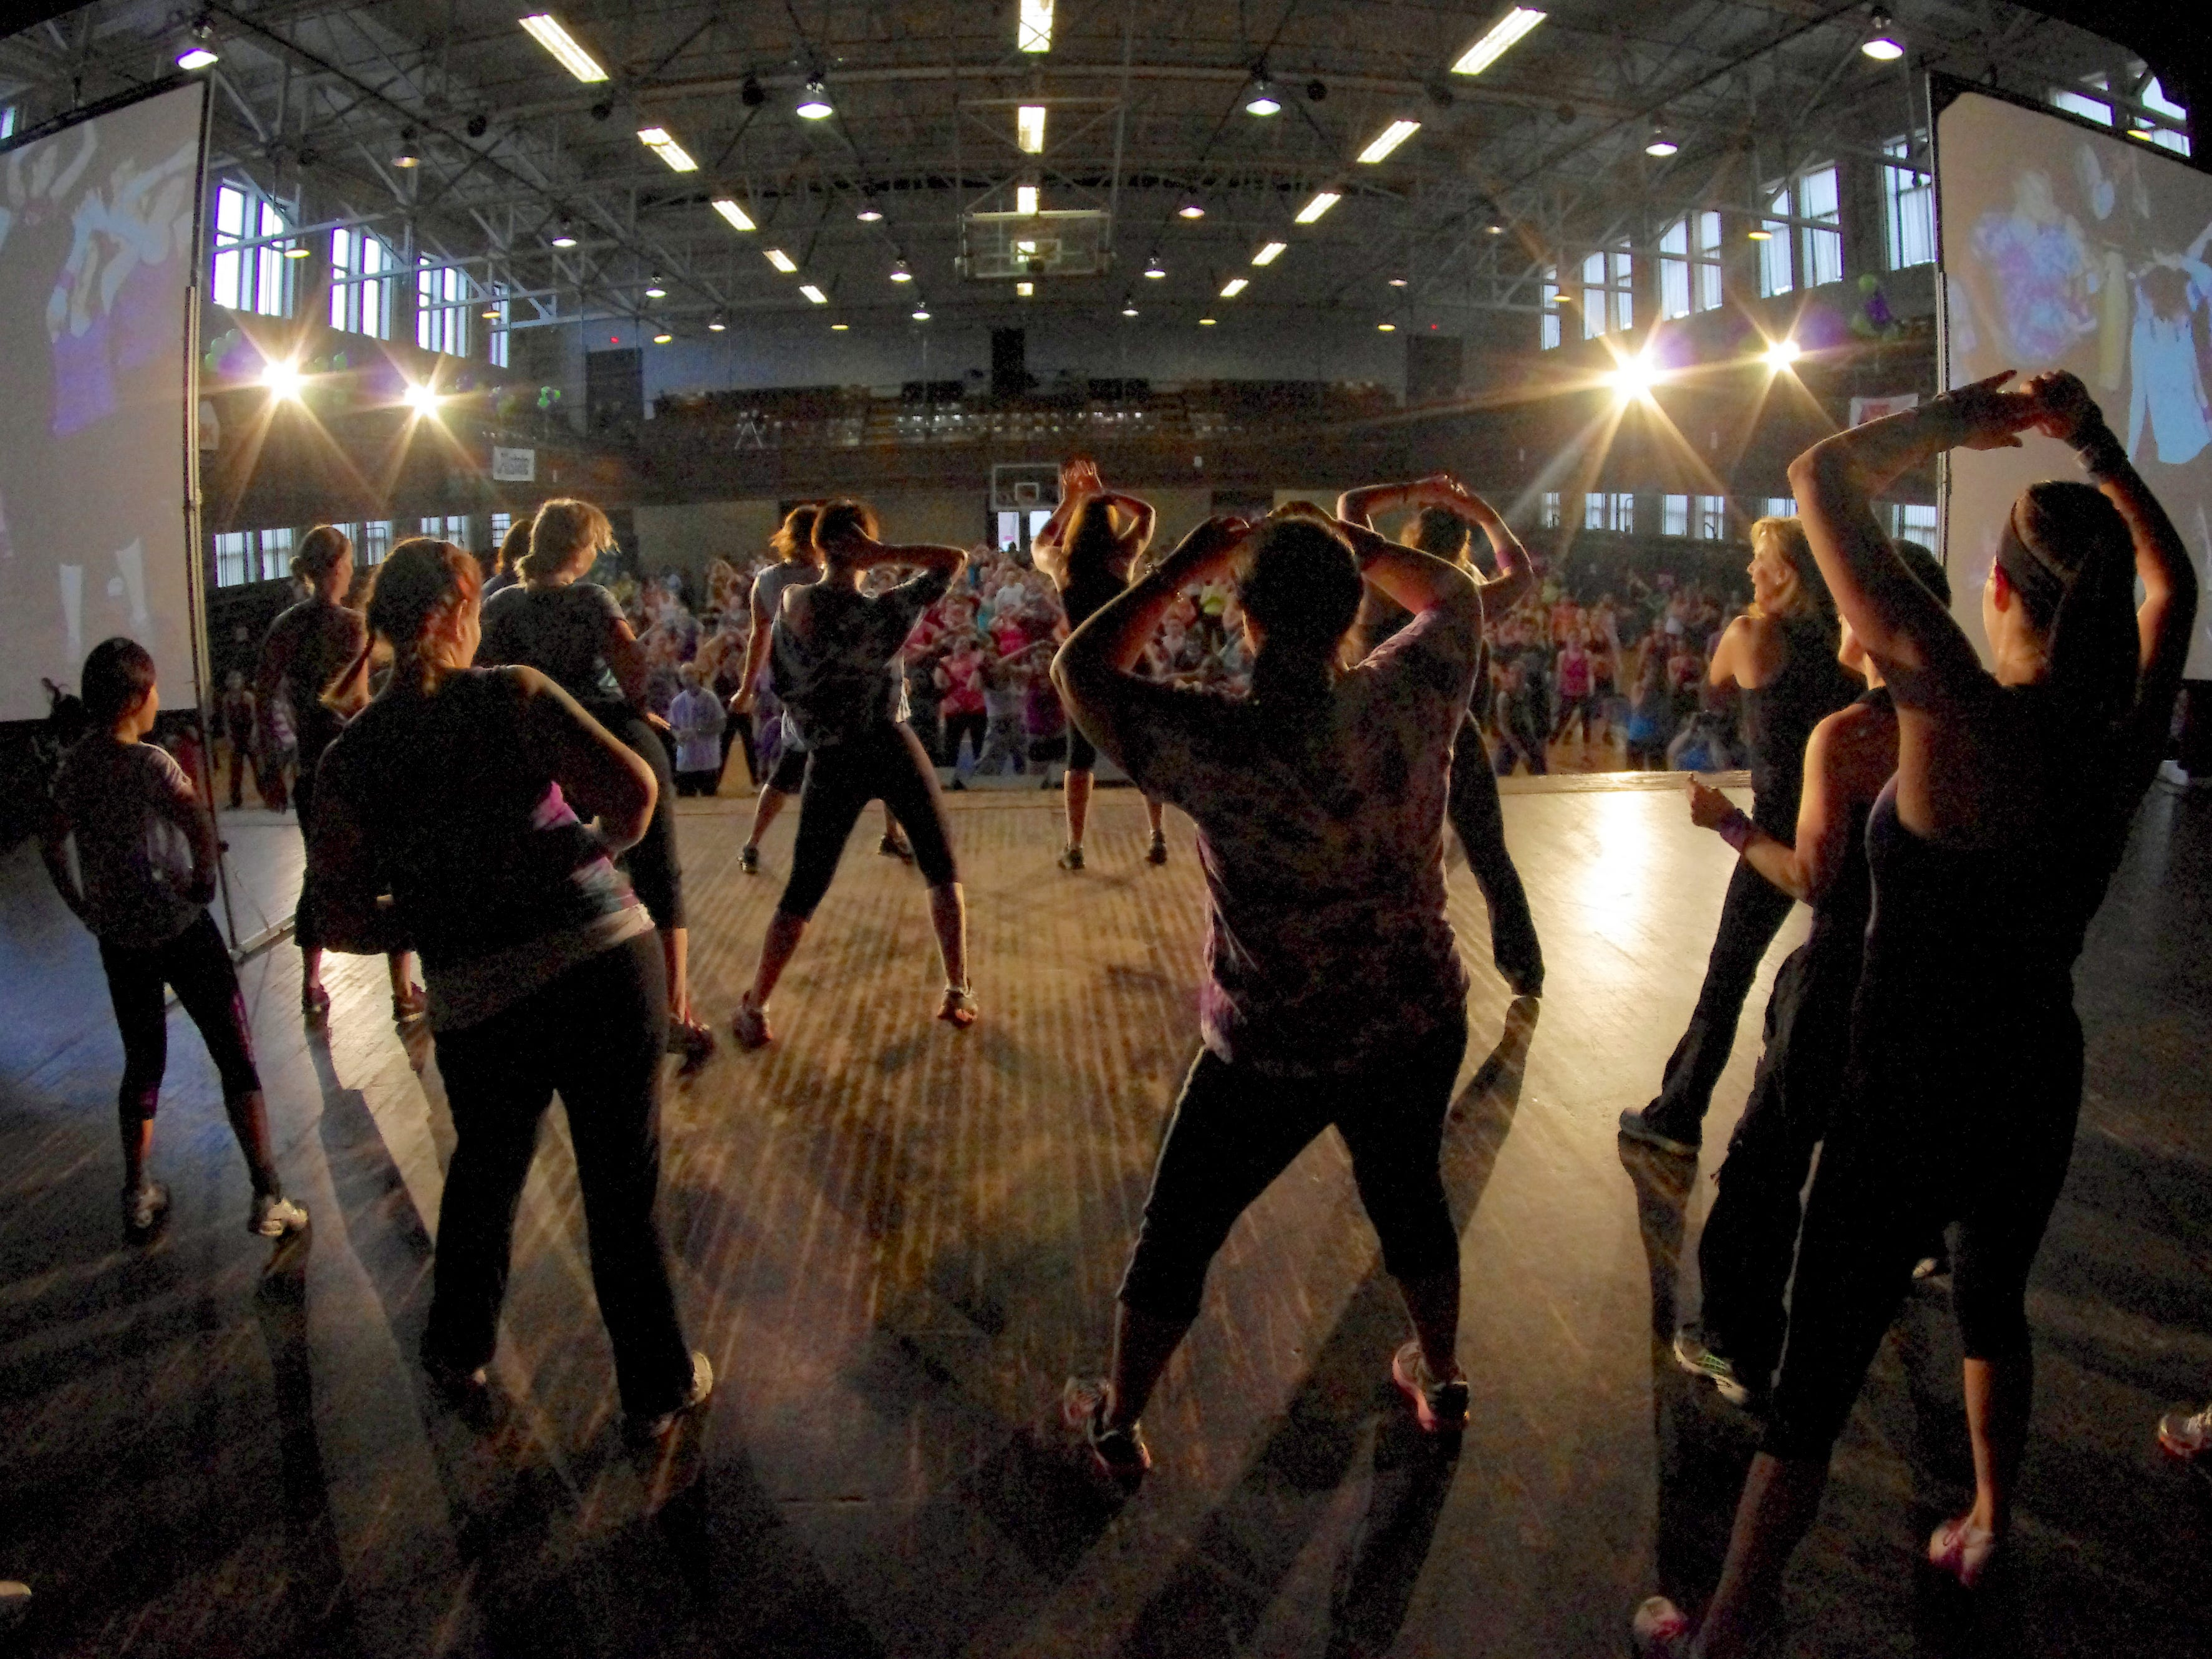 The 4th Annual WHBW Zumbathon kicks off at Memorial Auditorium in Burlington on Saturday, March 24, 2012. Photo by Steve Mease.